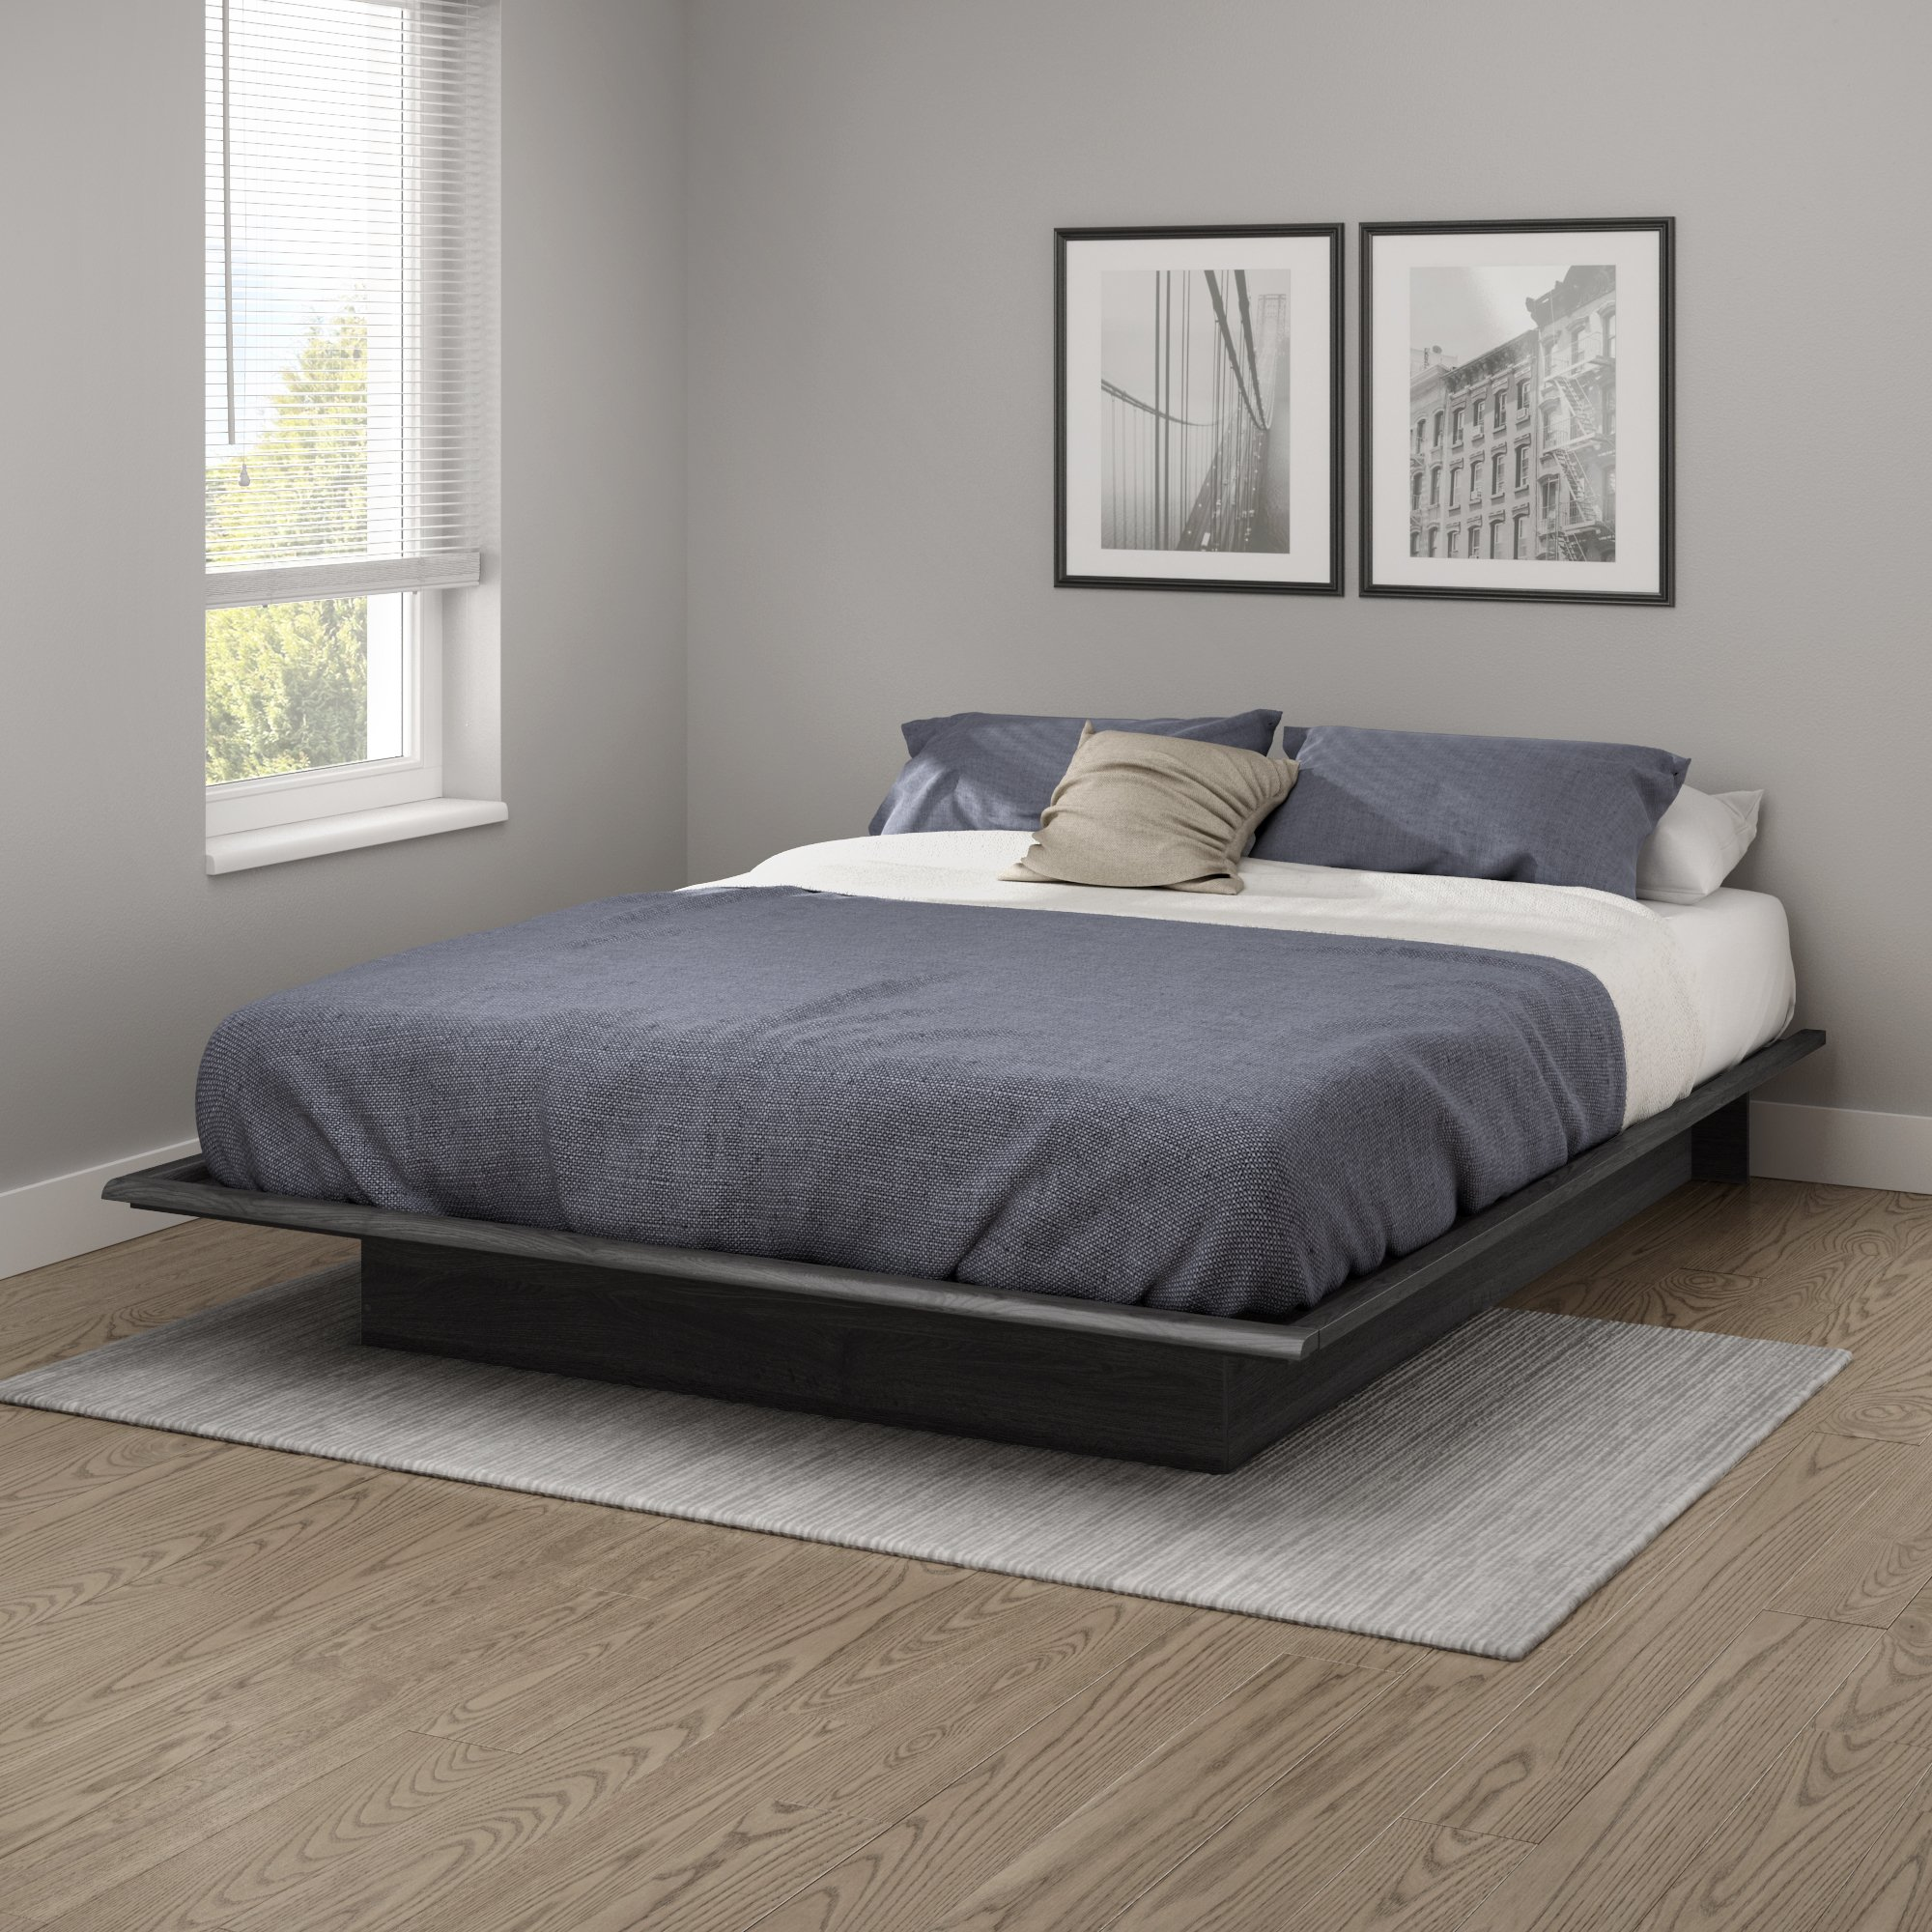 South Shore 10440 Step One Queen Platform Bed (60''), Gray Oak, 60'',